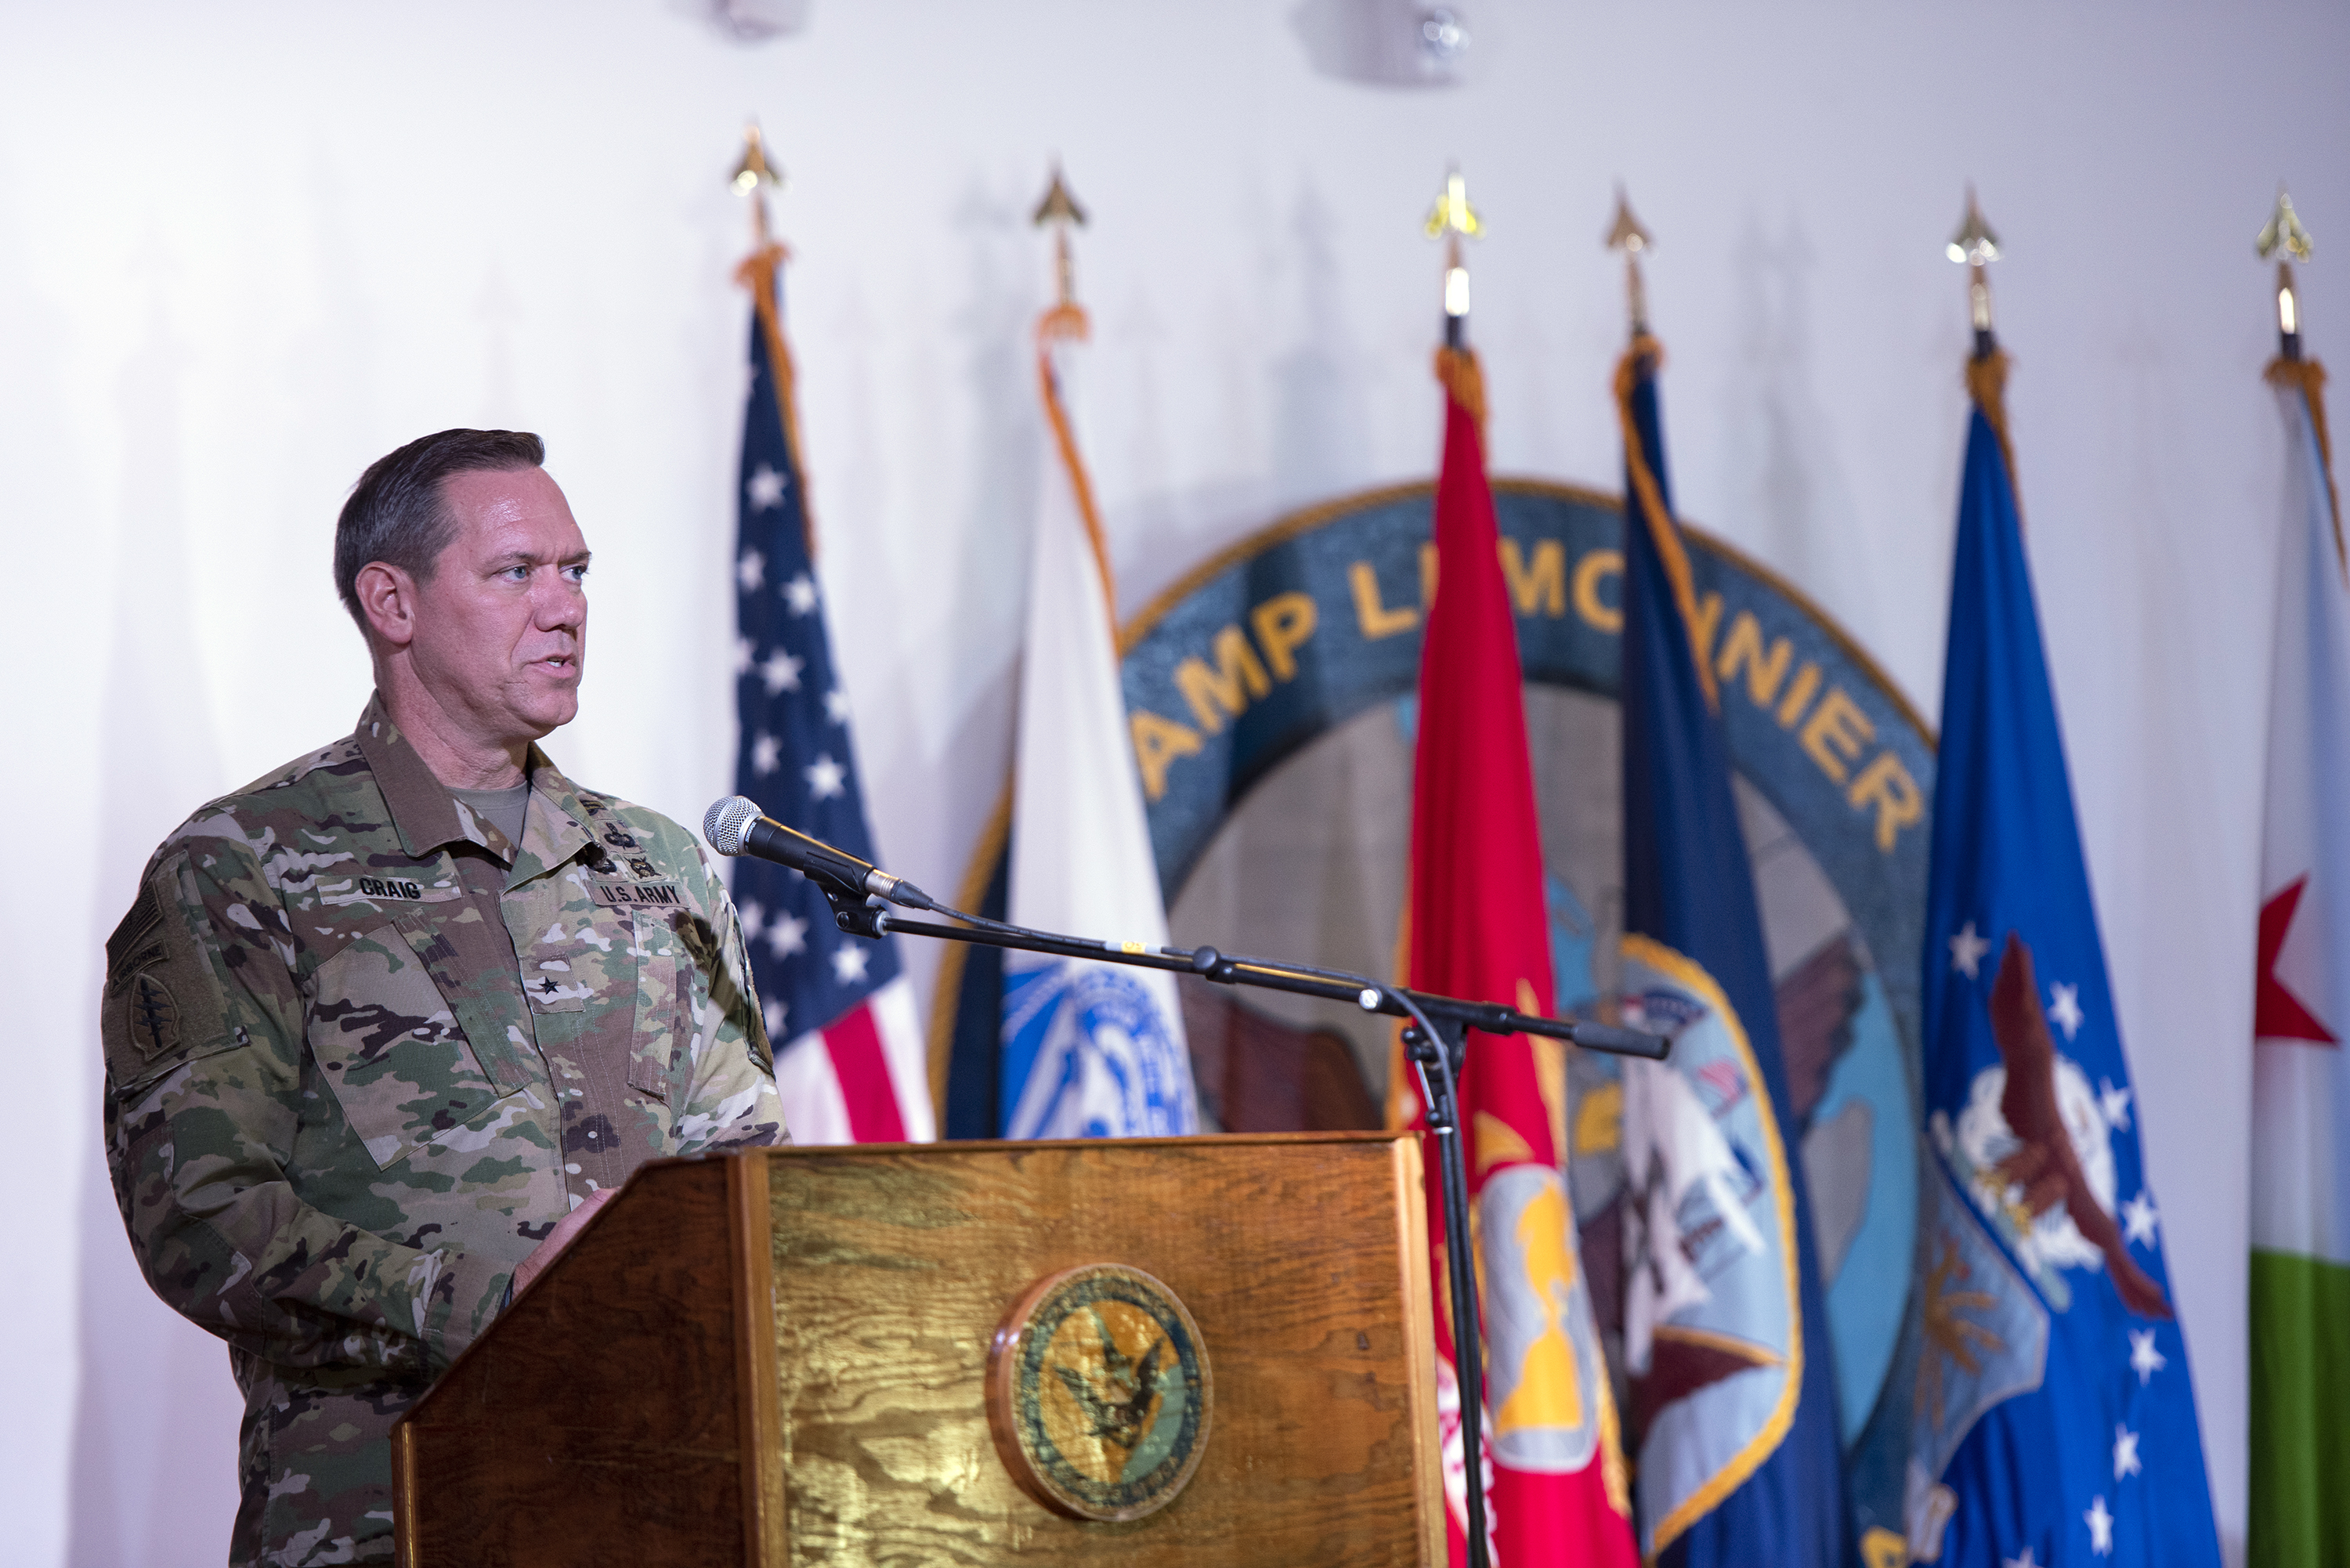 U.S. Army Brig. Gen. James Craig, commander, Combined Joint Task Force Horn of Africa, gives his welcome address following a change of command ceremony on Camp Lemonnier, Djibouti, June 14, 2018. Craig becomes the sixteenth commander of Combined Joint Task Force-Horn of Africa. (U.S. Air National Guard photo by Master Sgt. Sarah Mattison)